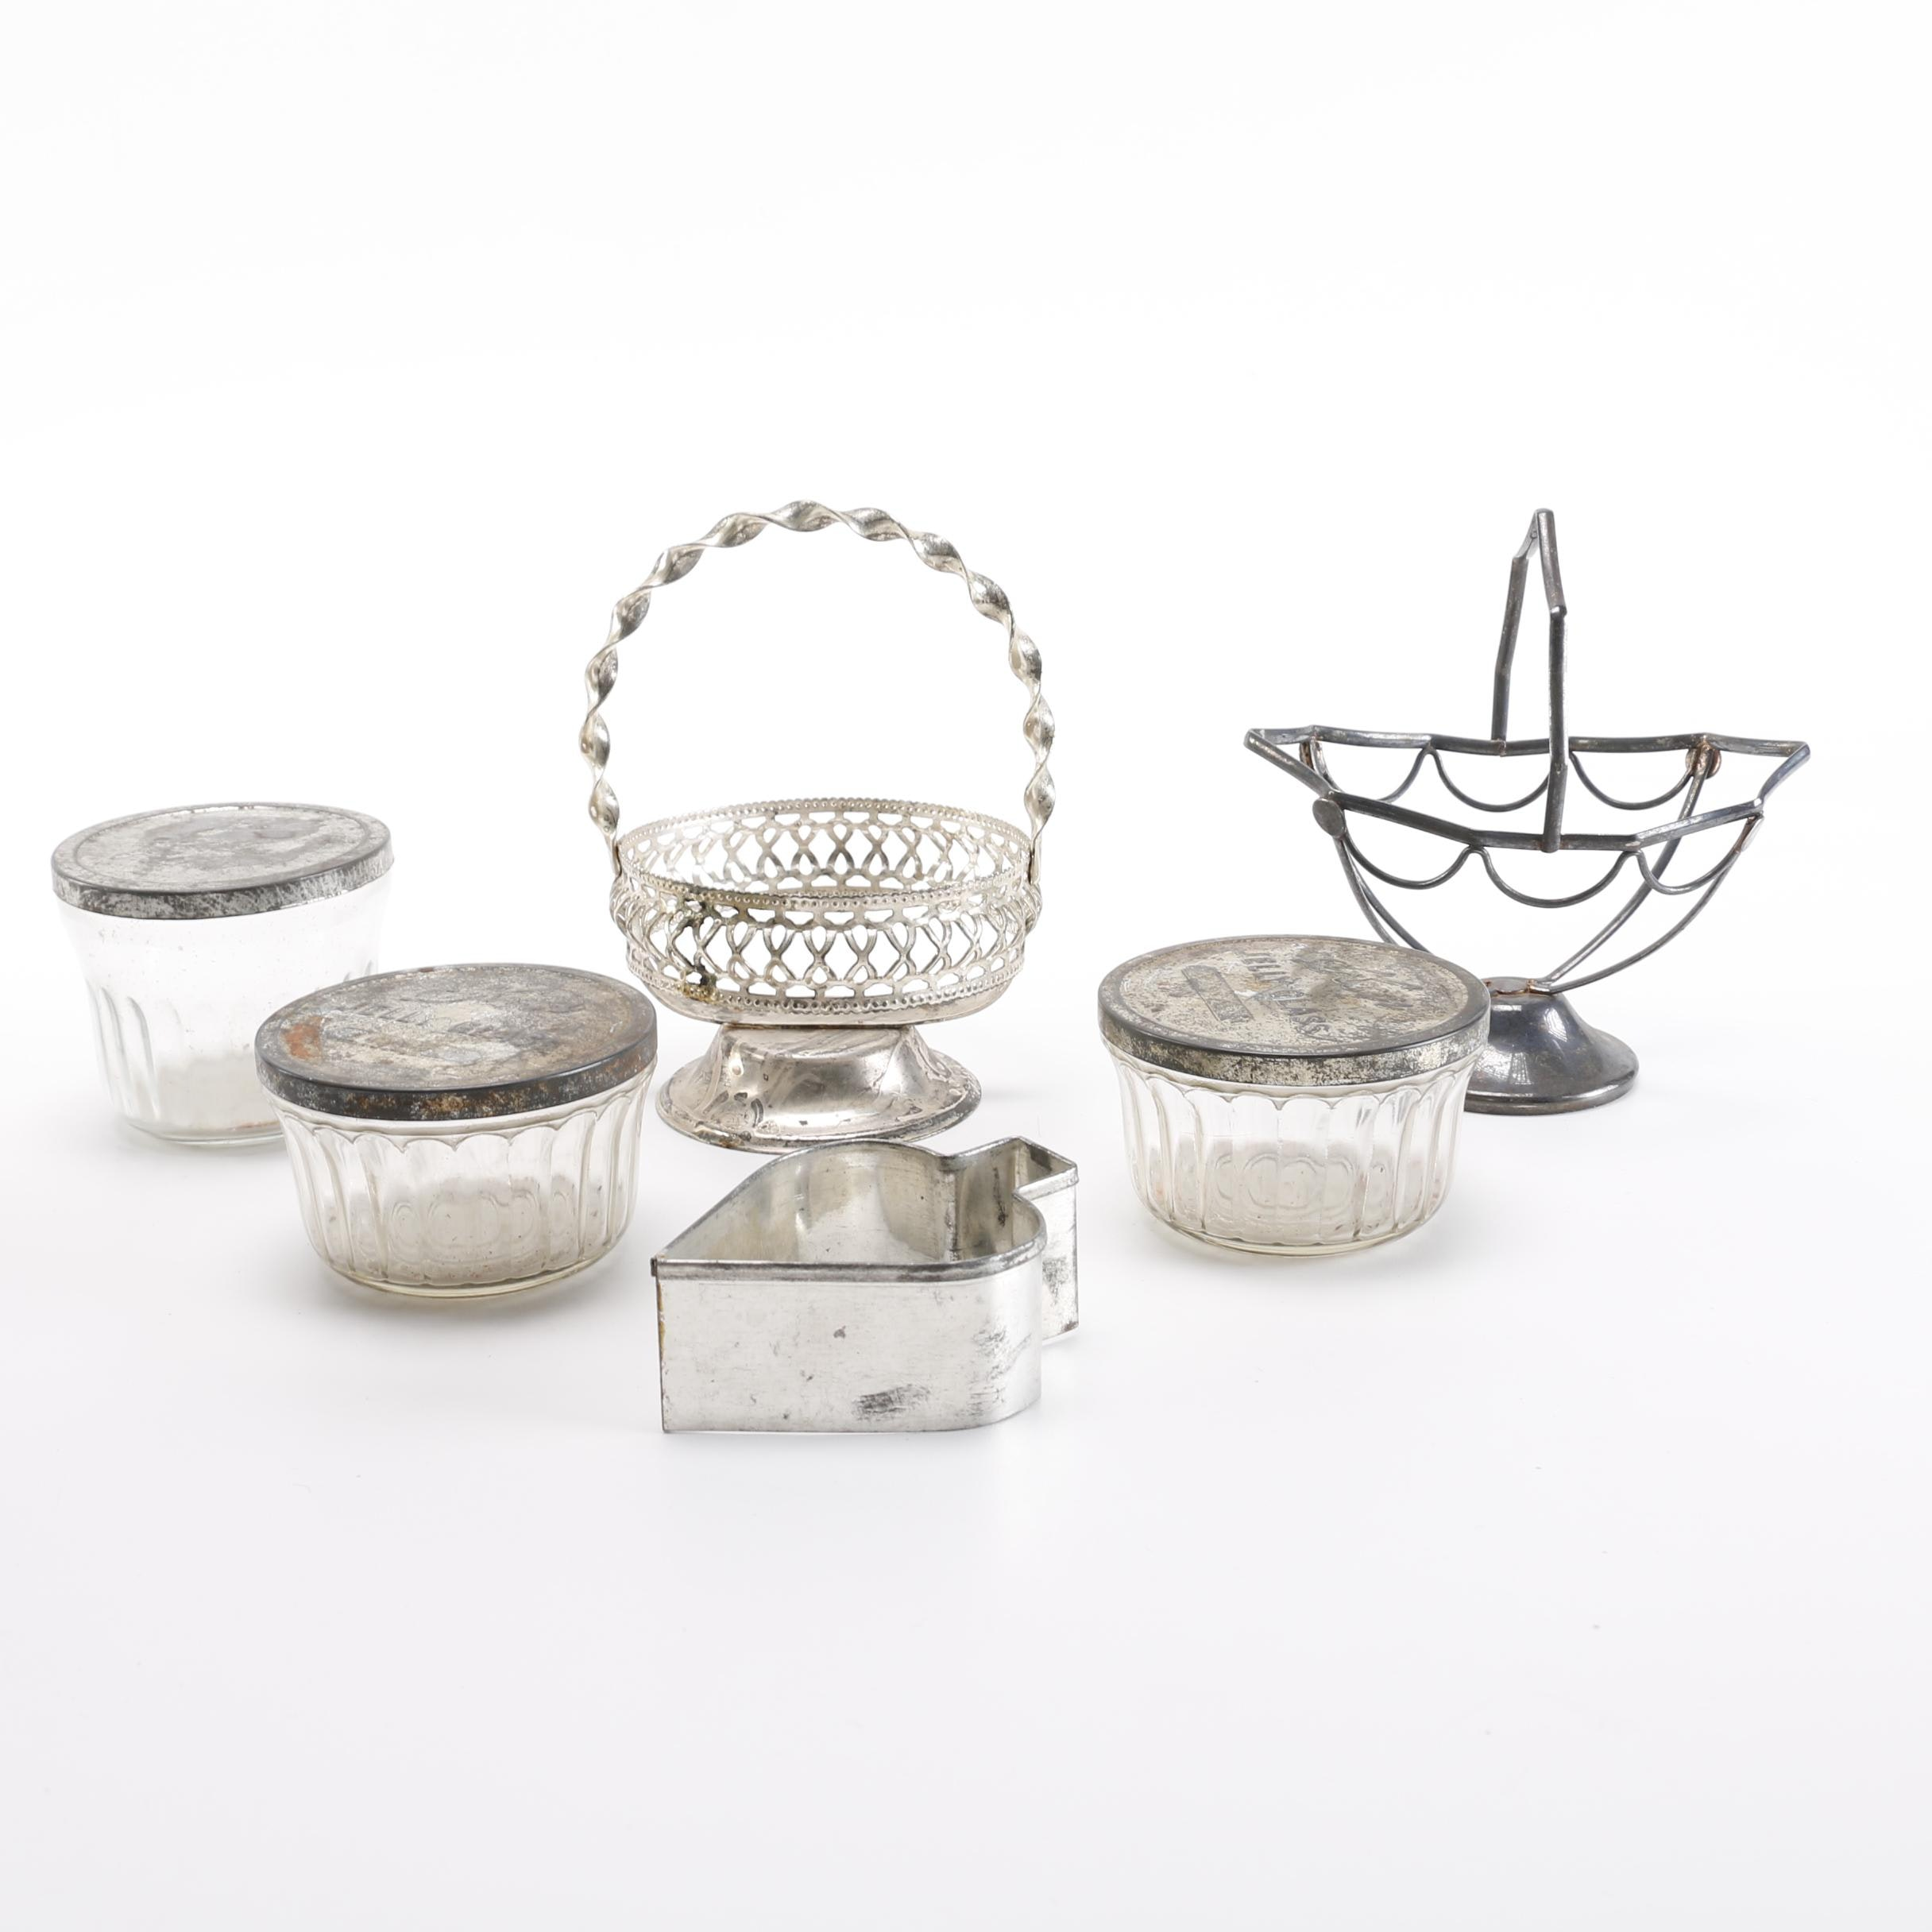 Collection of Glass and Metal Kitchenware